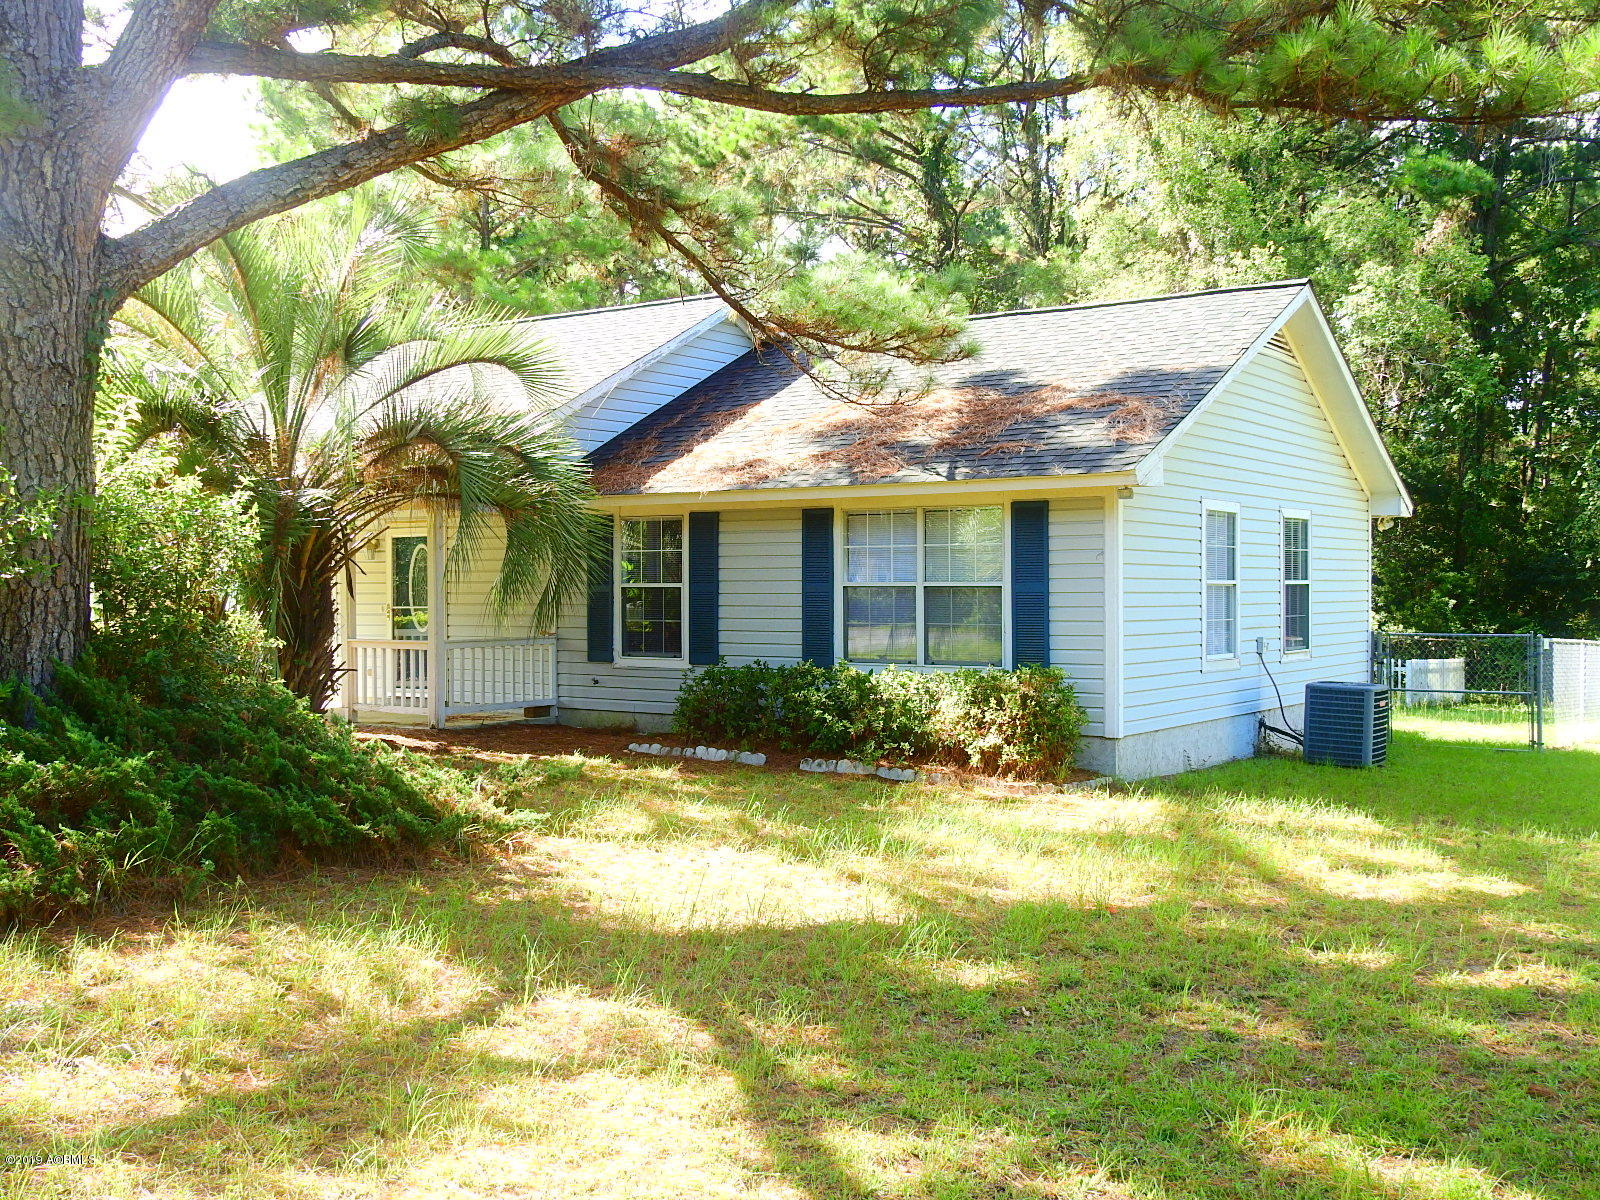 Photo of 21 Lisbon Way, Beaufort, SC 29907